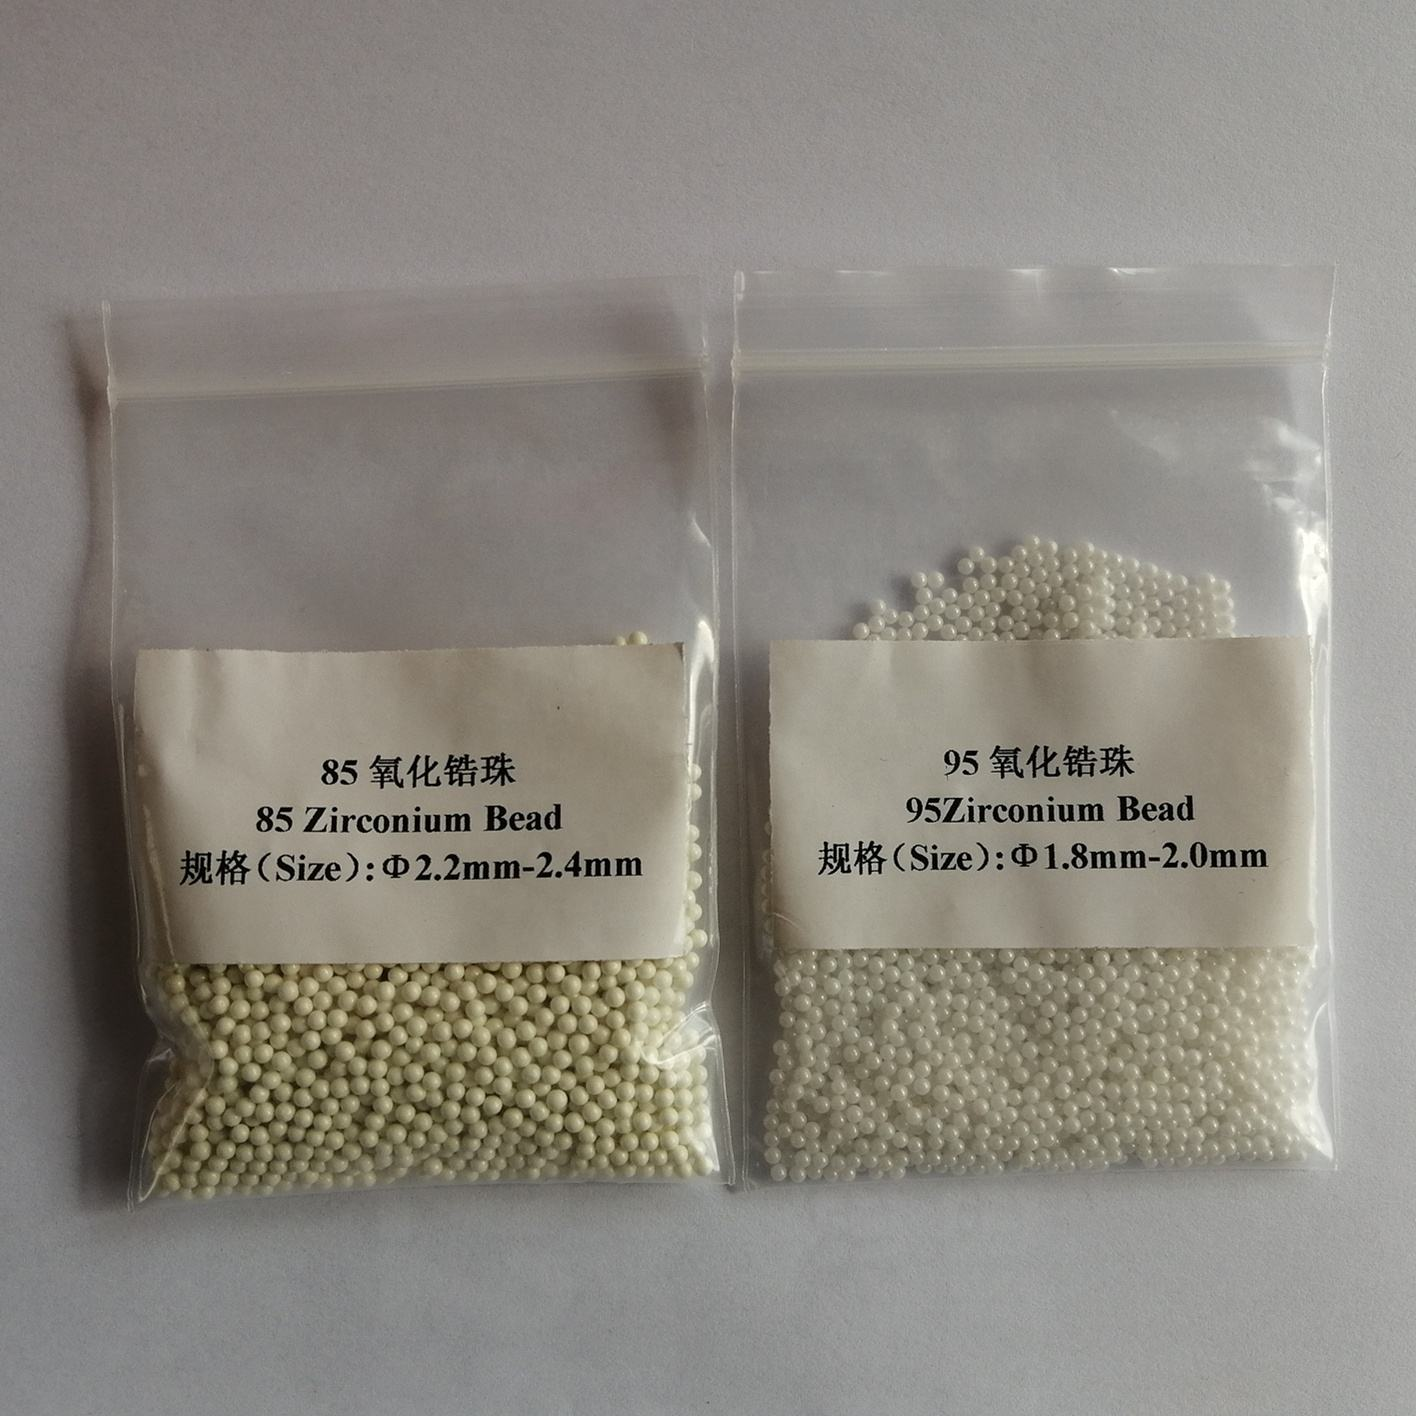 95% content high density zirconium bead high strength and hardness